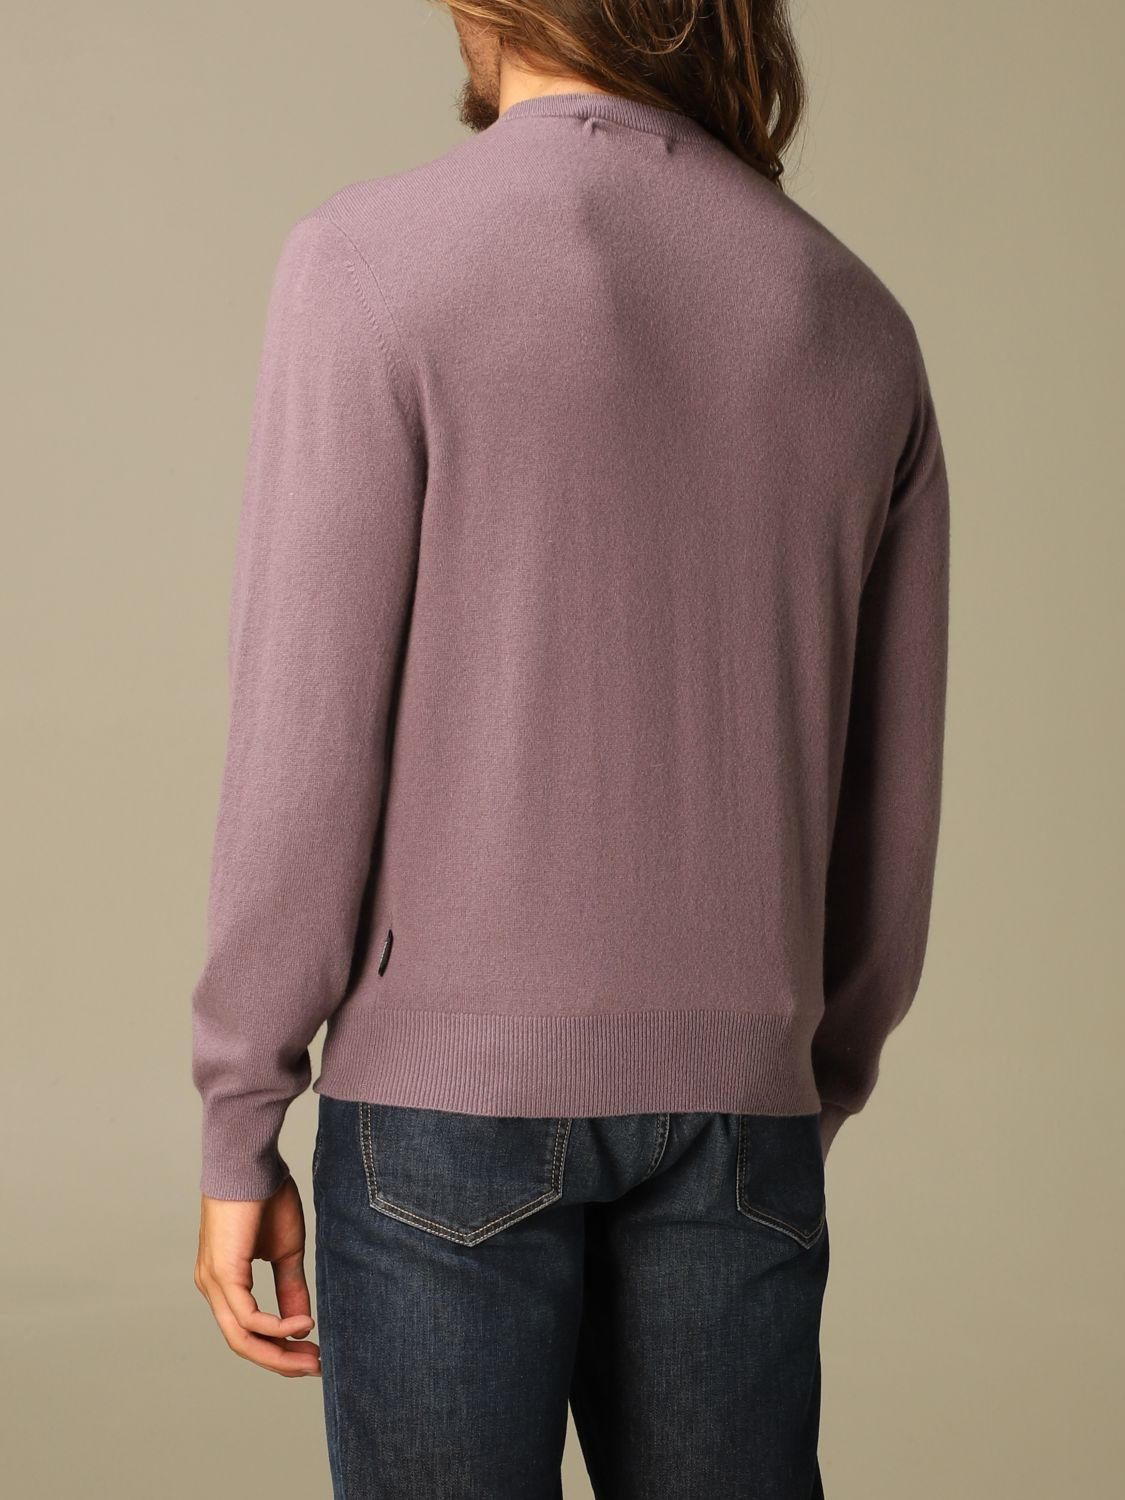 Sweater Z Zegna: Z Zegna cashmere sweater with long sleeves wisteria 2